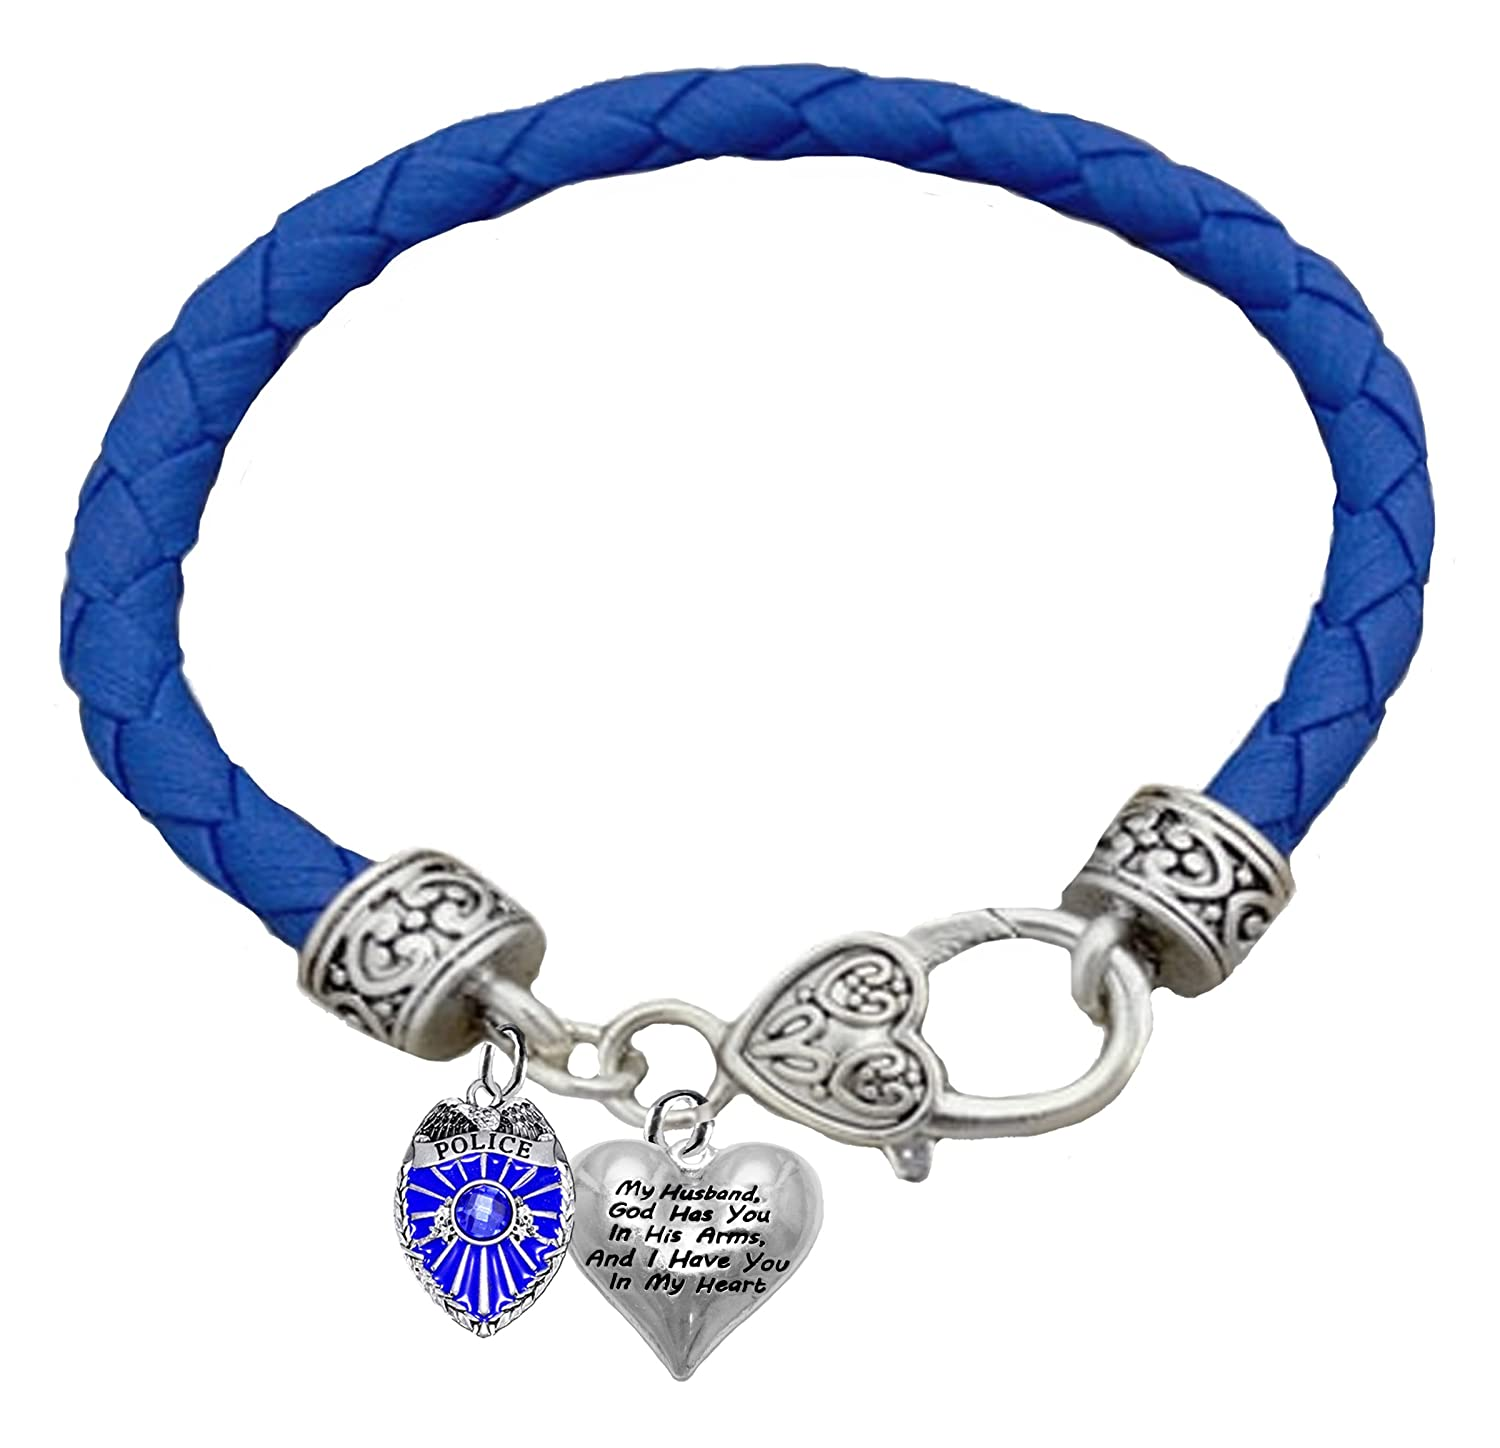 Lead,or Cadmimum My Husband Blue Leather Bracelet God Has You in His Arms Hypoallergenic Safe-No Nickel and I Have You in My Heart Cardinali Jewelry Policeman